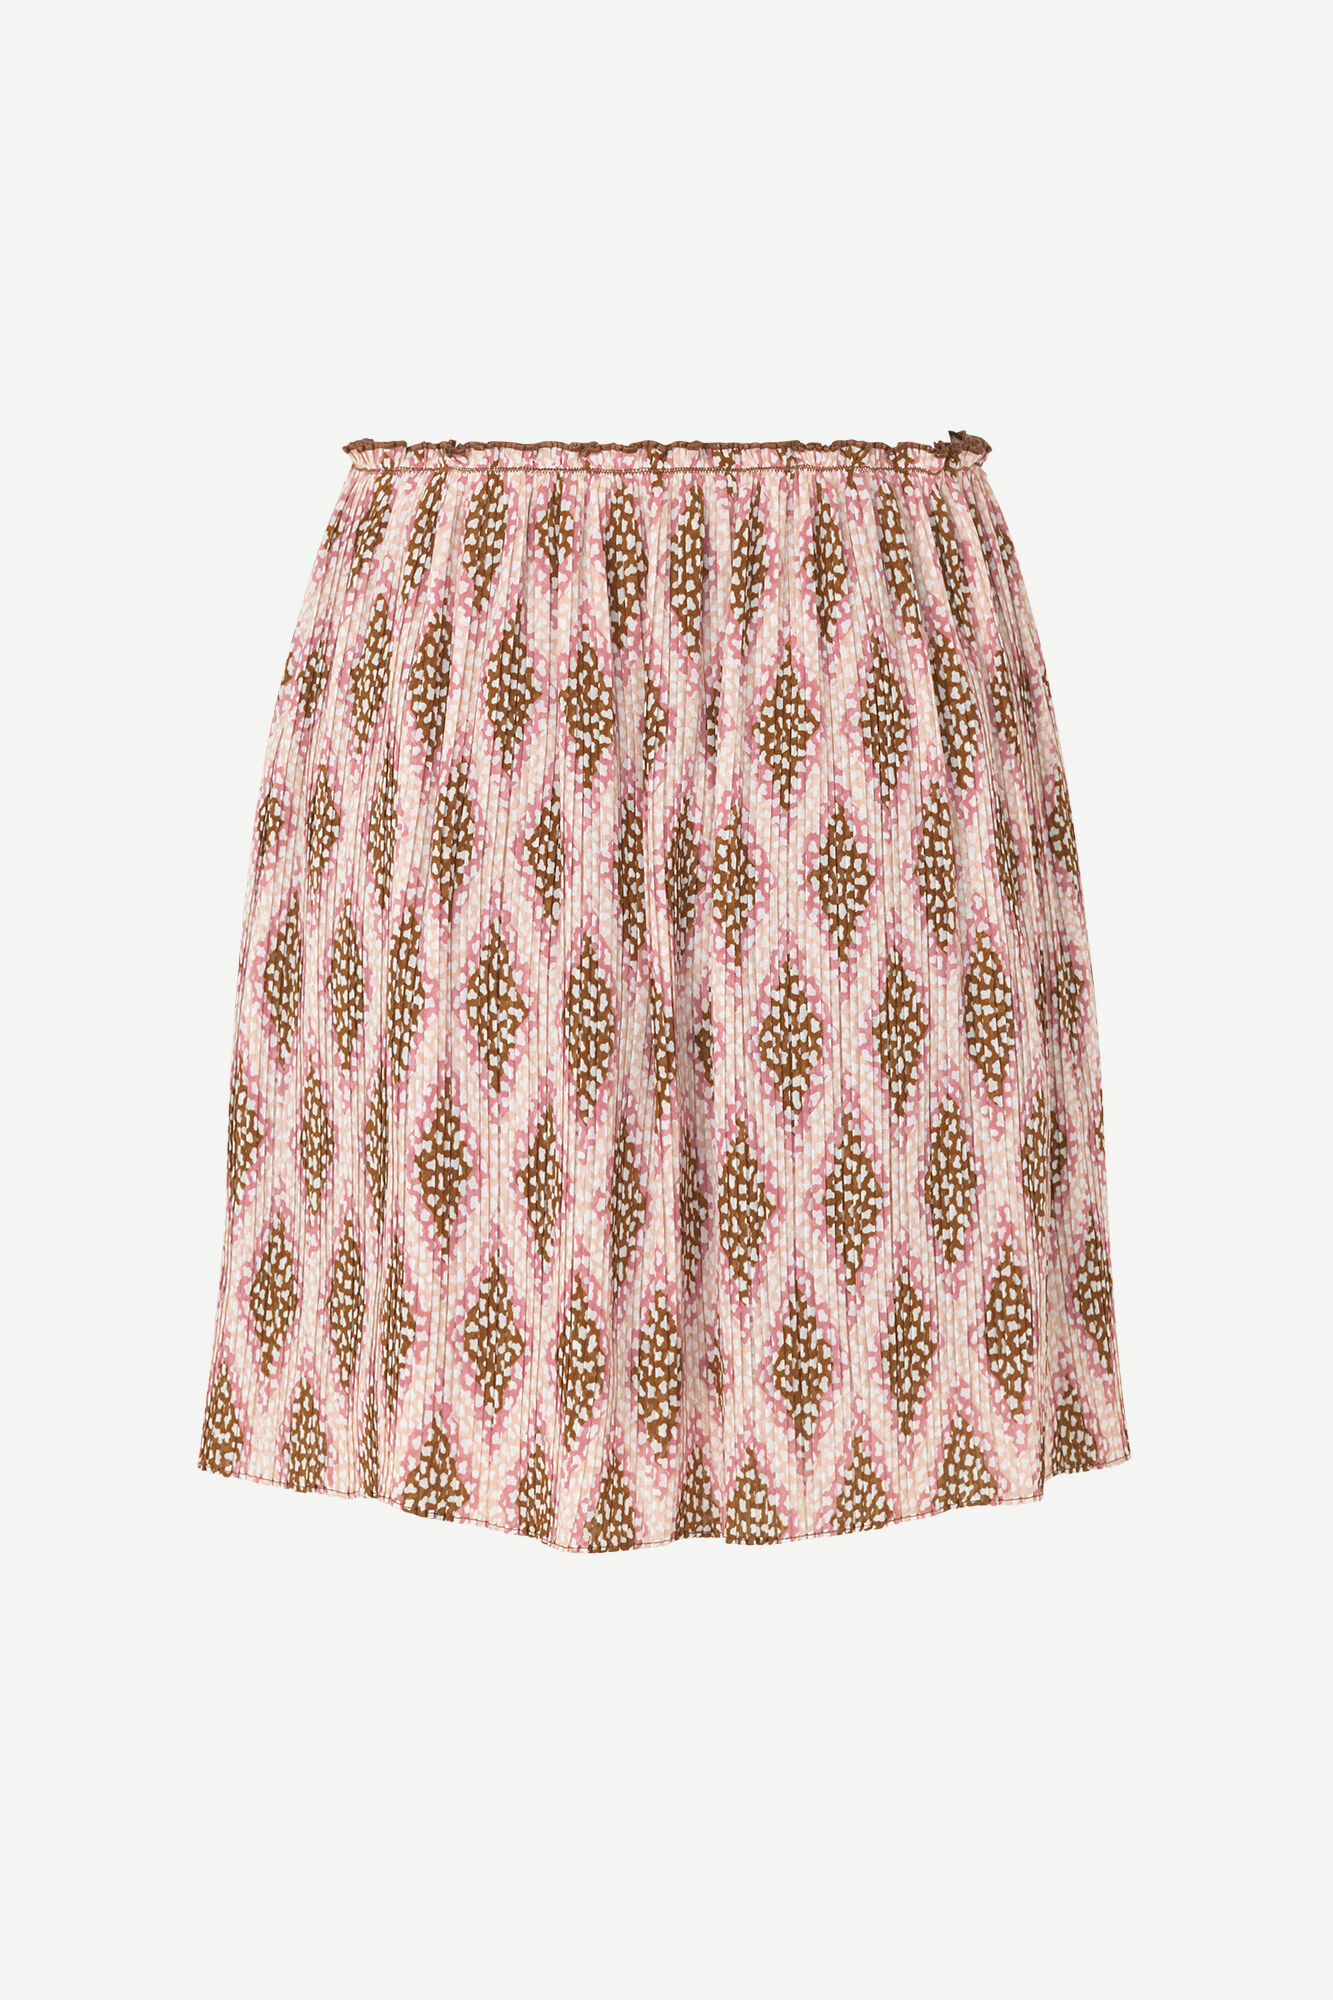 Lia short skirt aop 6621, FOULARD